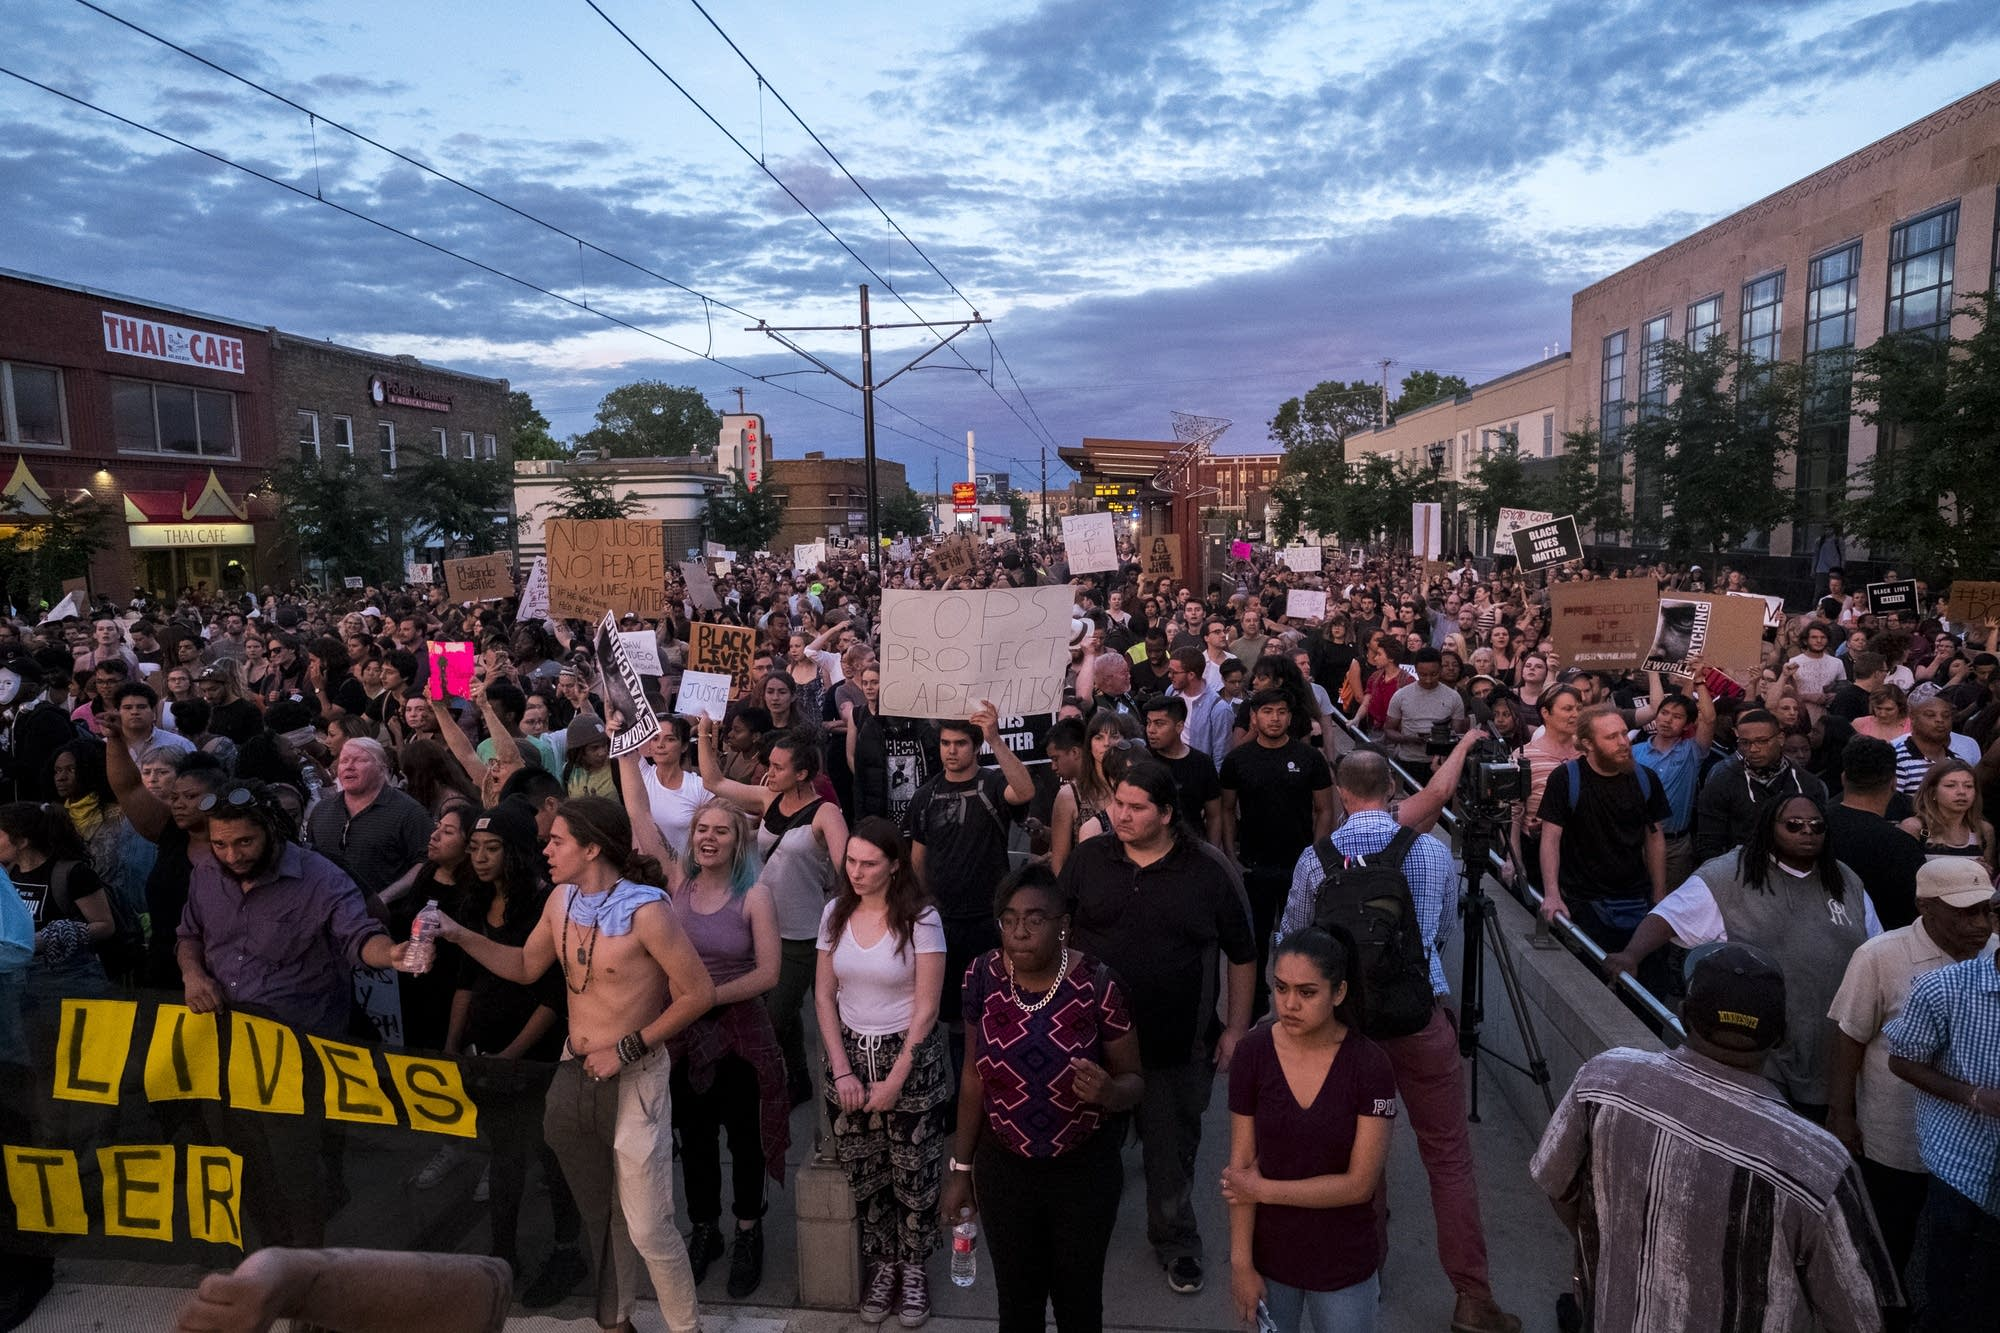 Over 1,000 protesters stop on University.